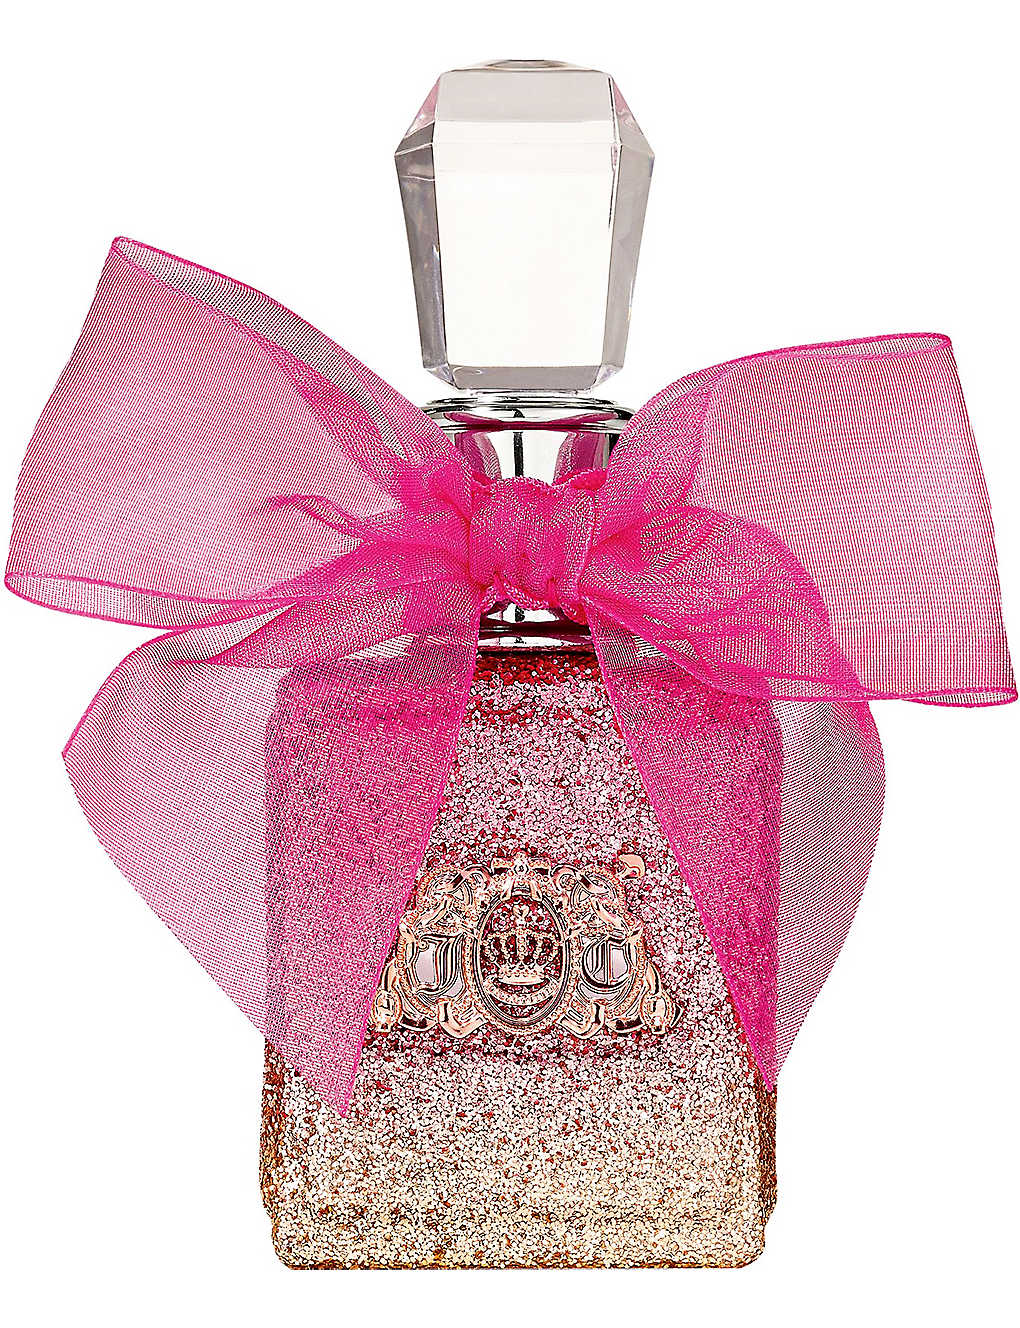 7351613a JUICY COUTURE - Viva la juicy rose eu de parfum | Selfridges.com